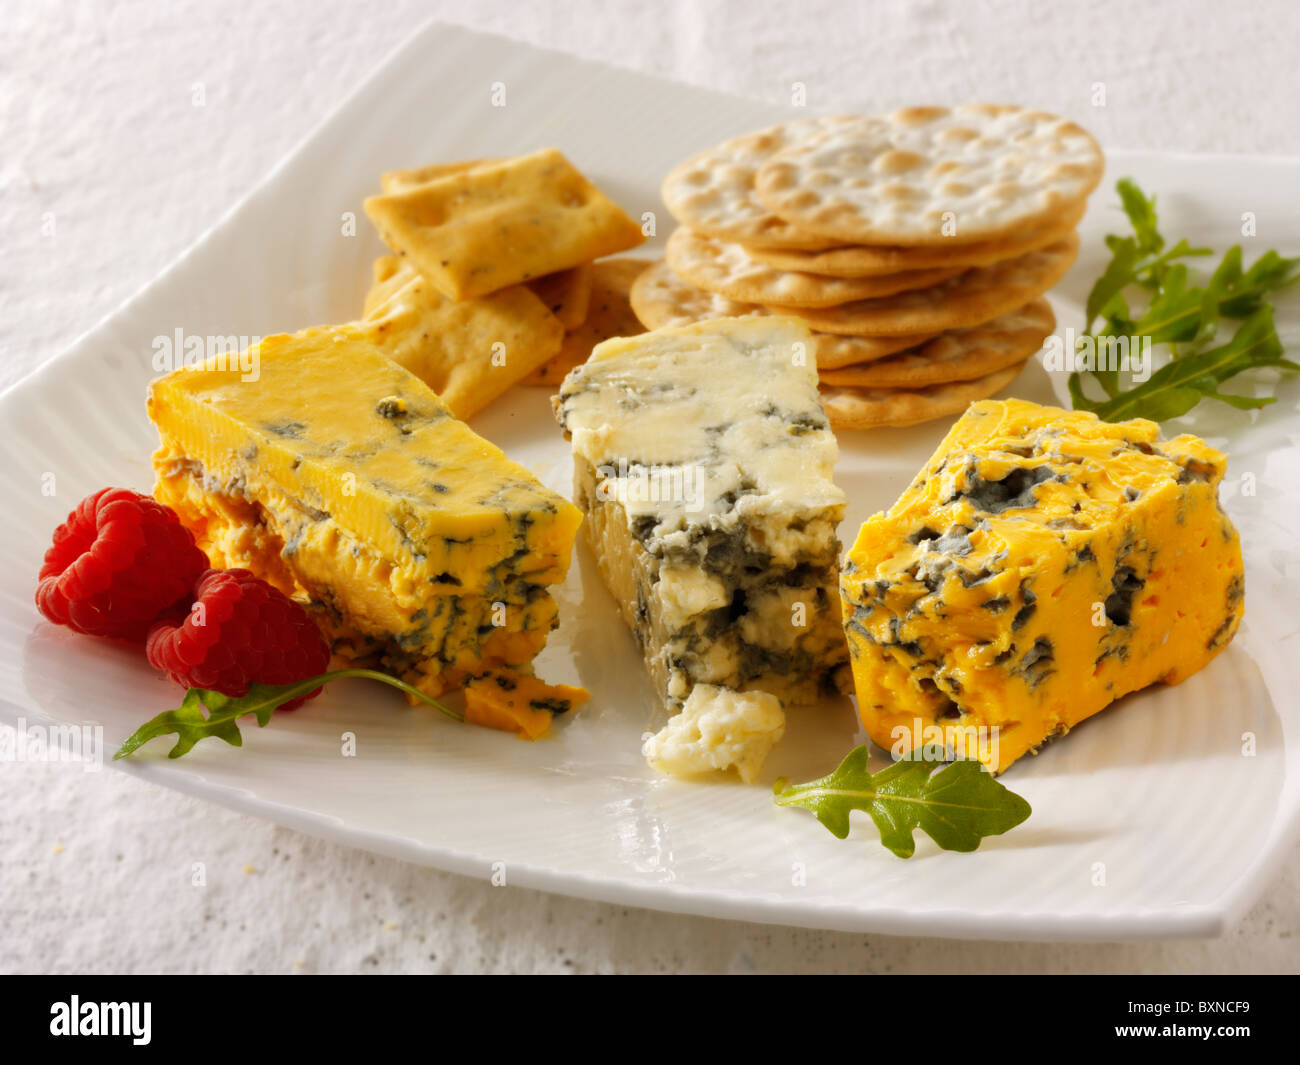 Cheese & biscuits with stilton, white stilton & blacksticks cheese. - Stock Image